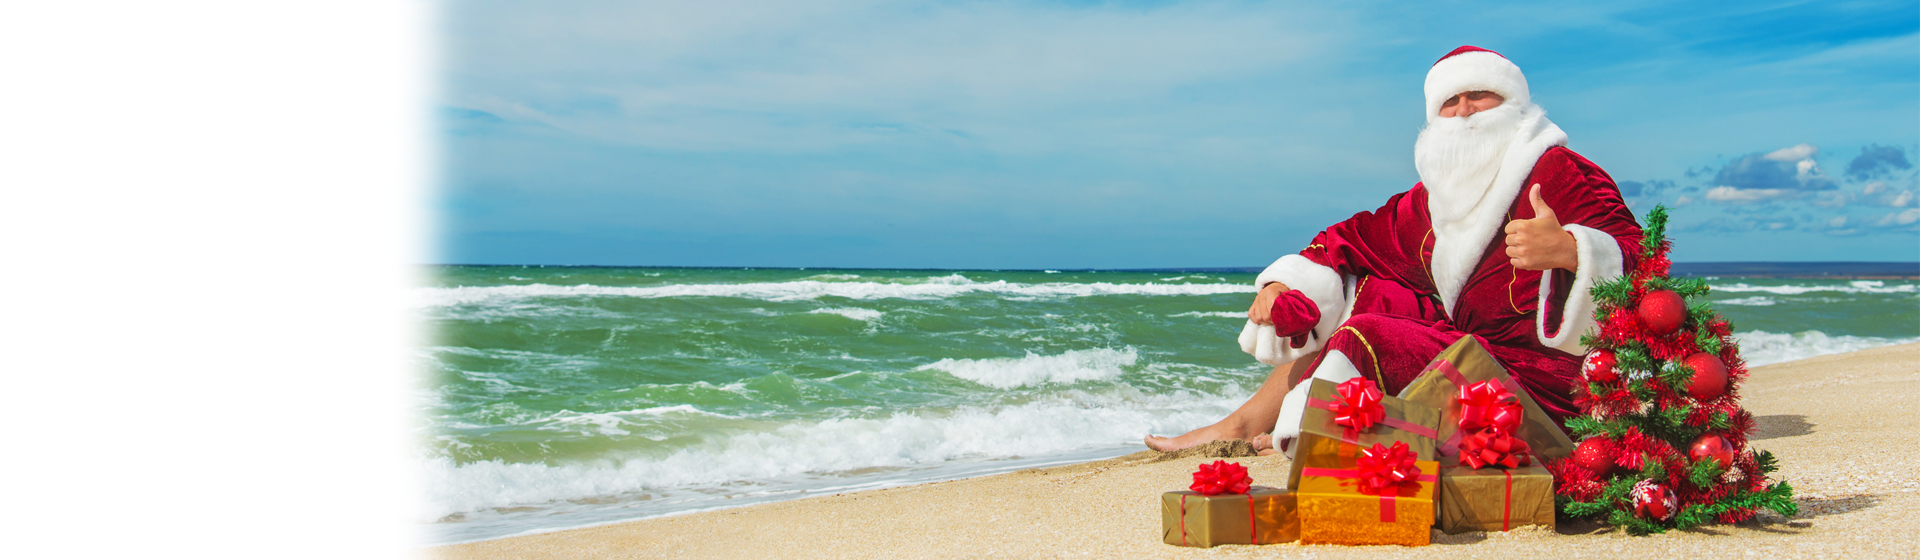 Santa and presents on the beach